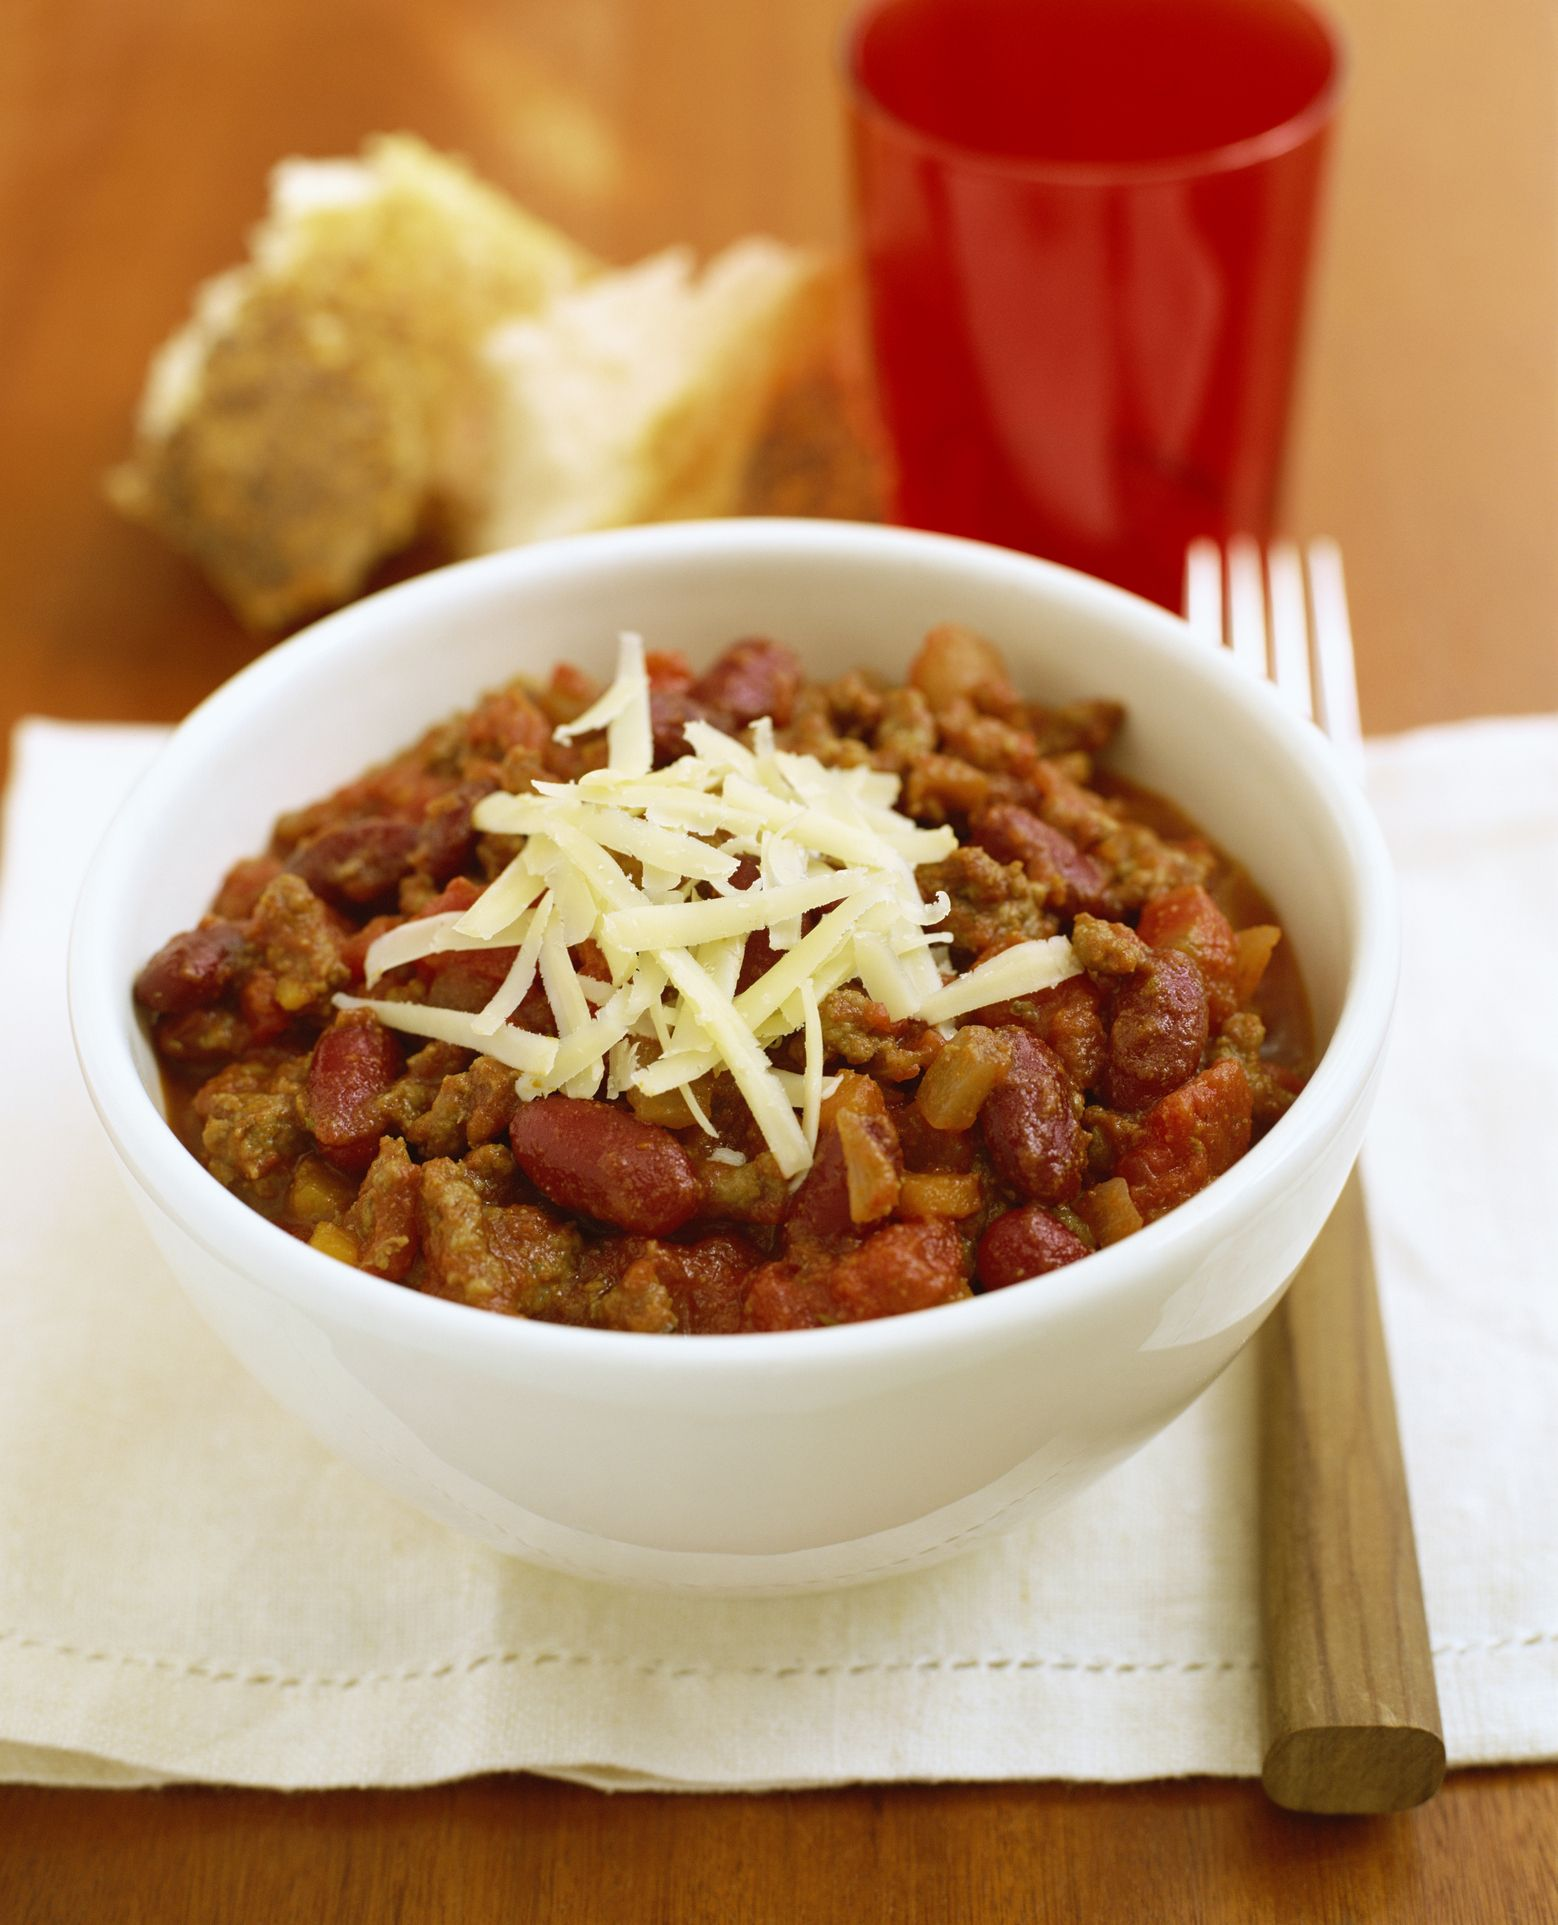 This Recipe For Home Chili Also Referred To As Revenge Chili Comes From Jerry Buma A Former Inte Slow Cooker Chili Recipe Healthy Chicken Chili Recipes